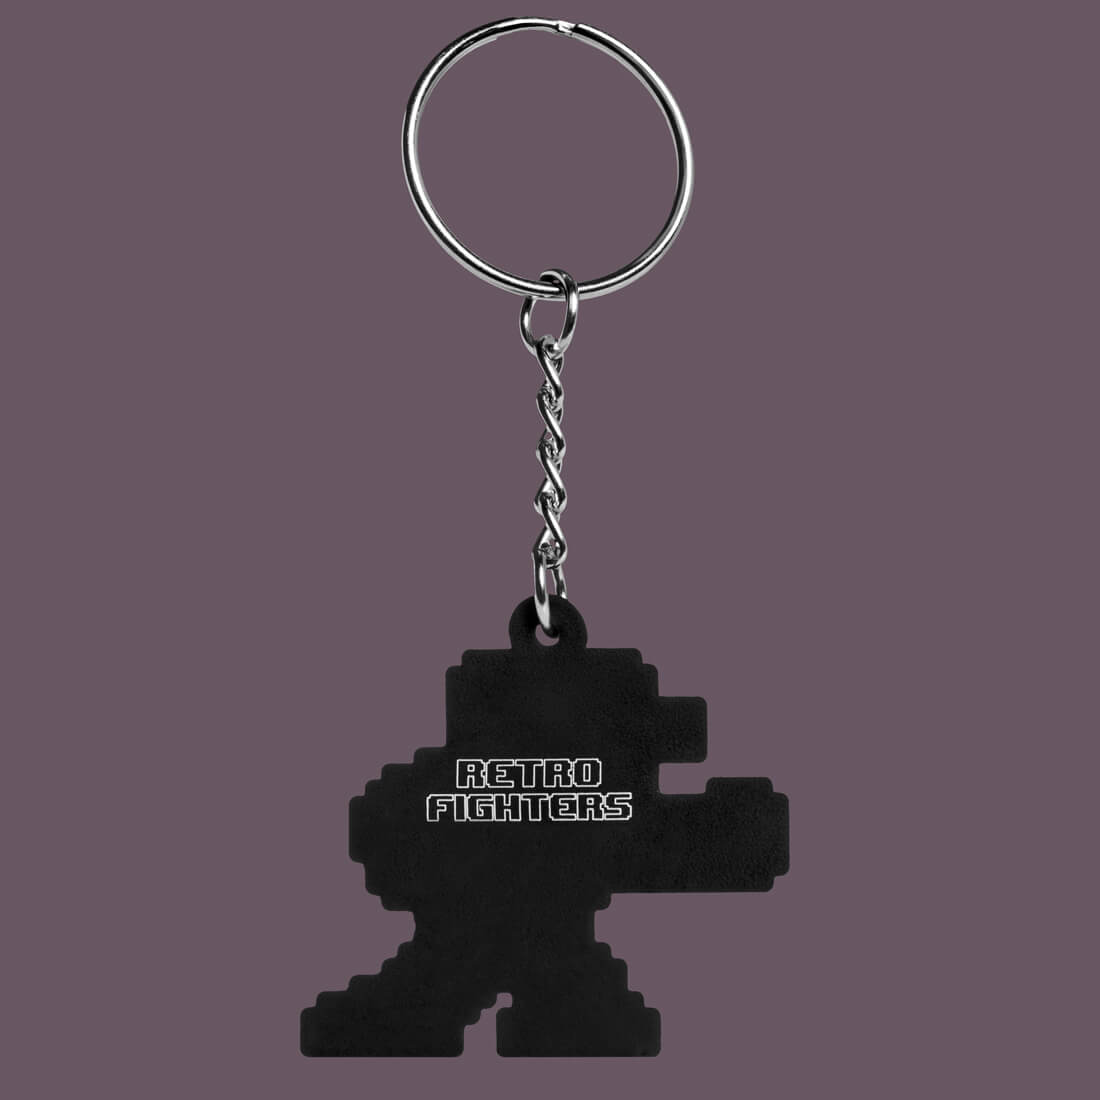 rf_fighter1_keychain_back_1100x1100